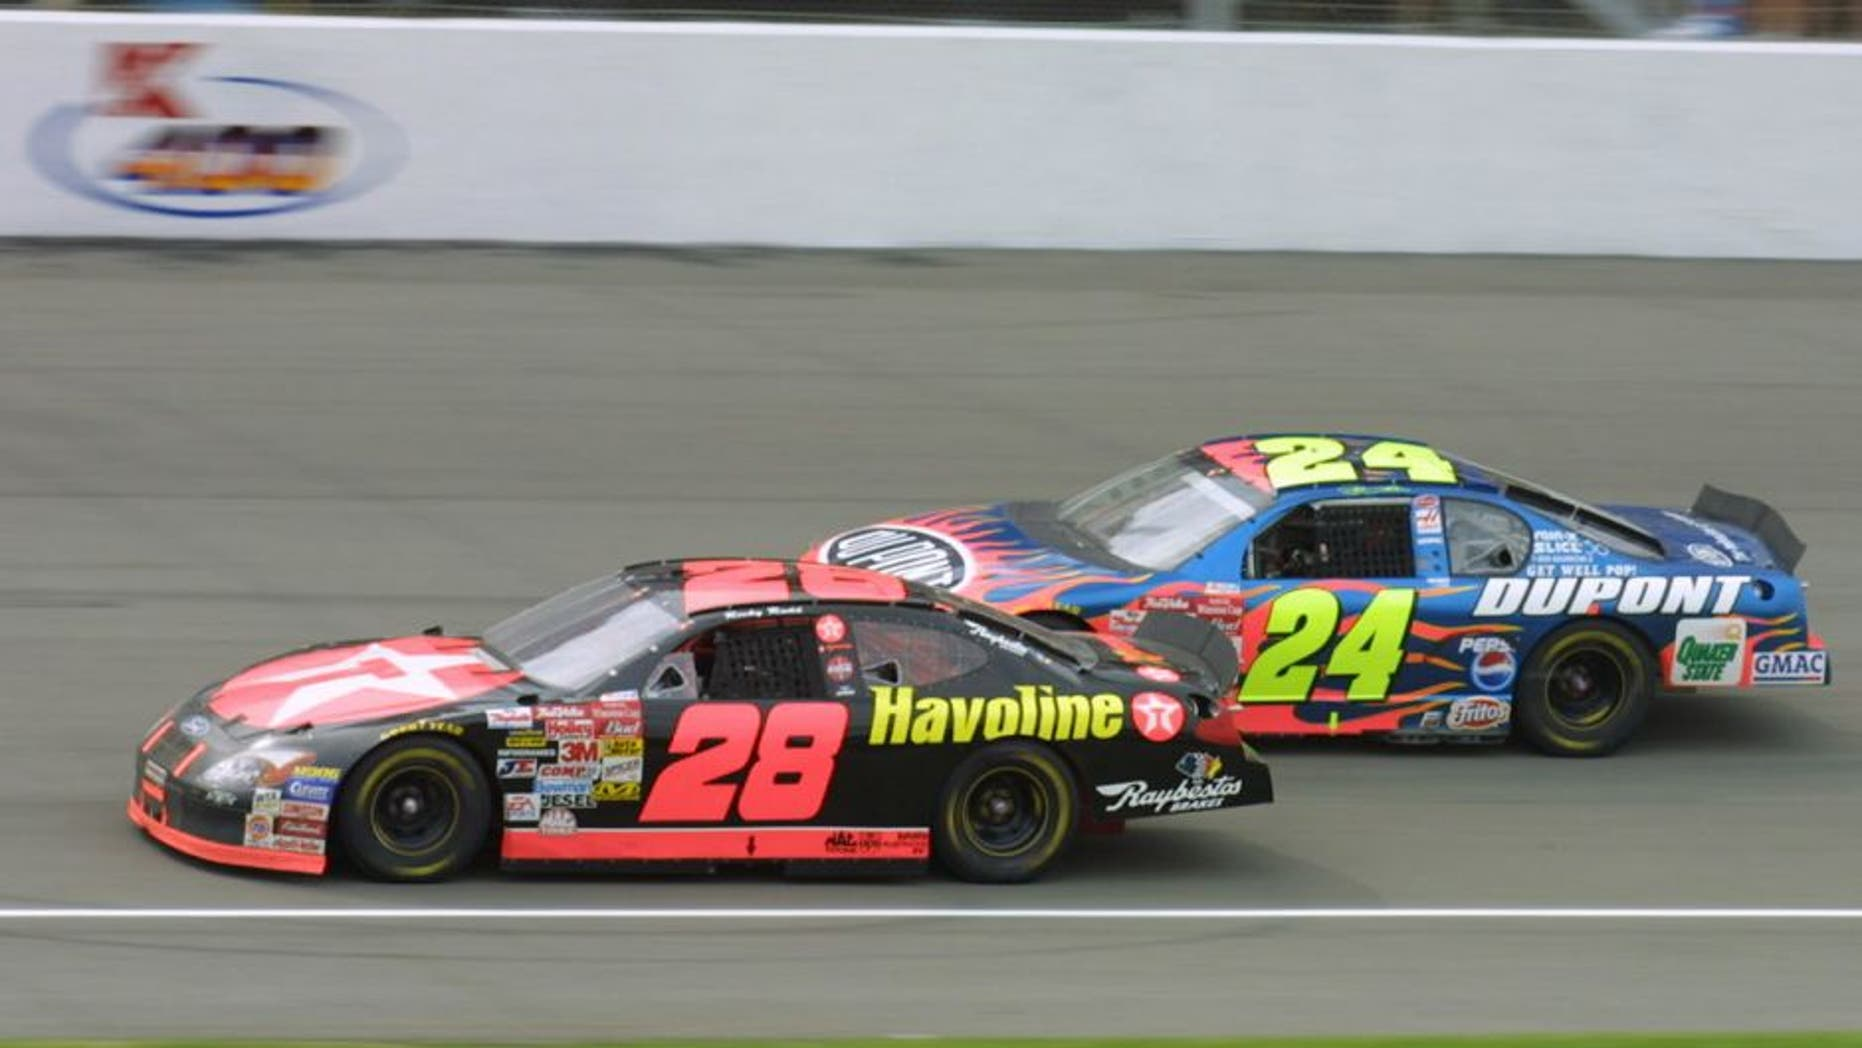 10 JUN 2001: Ricky Rudd in his #28 Texaco Havoline Ford Taurus passes Jeff Gordon only to be passed back and finish second during the NASCAR Winston Cup Series Kmart 400 at Michigan International Speedway in Brooklyn, Michigan. DIGITAL IMAGE Mandatory Credit: Robert Laberge/ALLSPORT